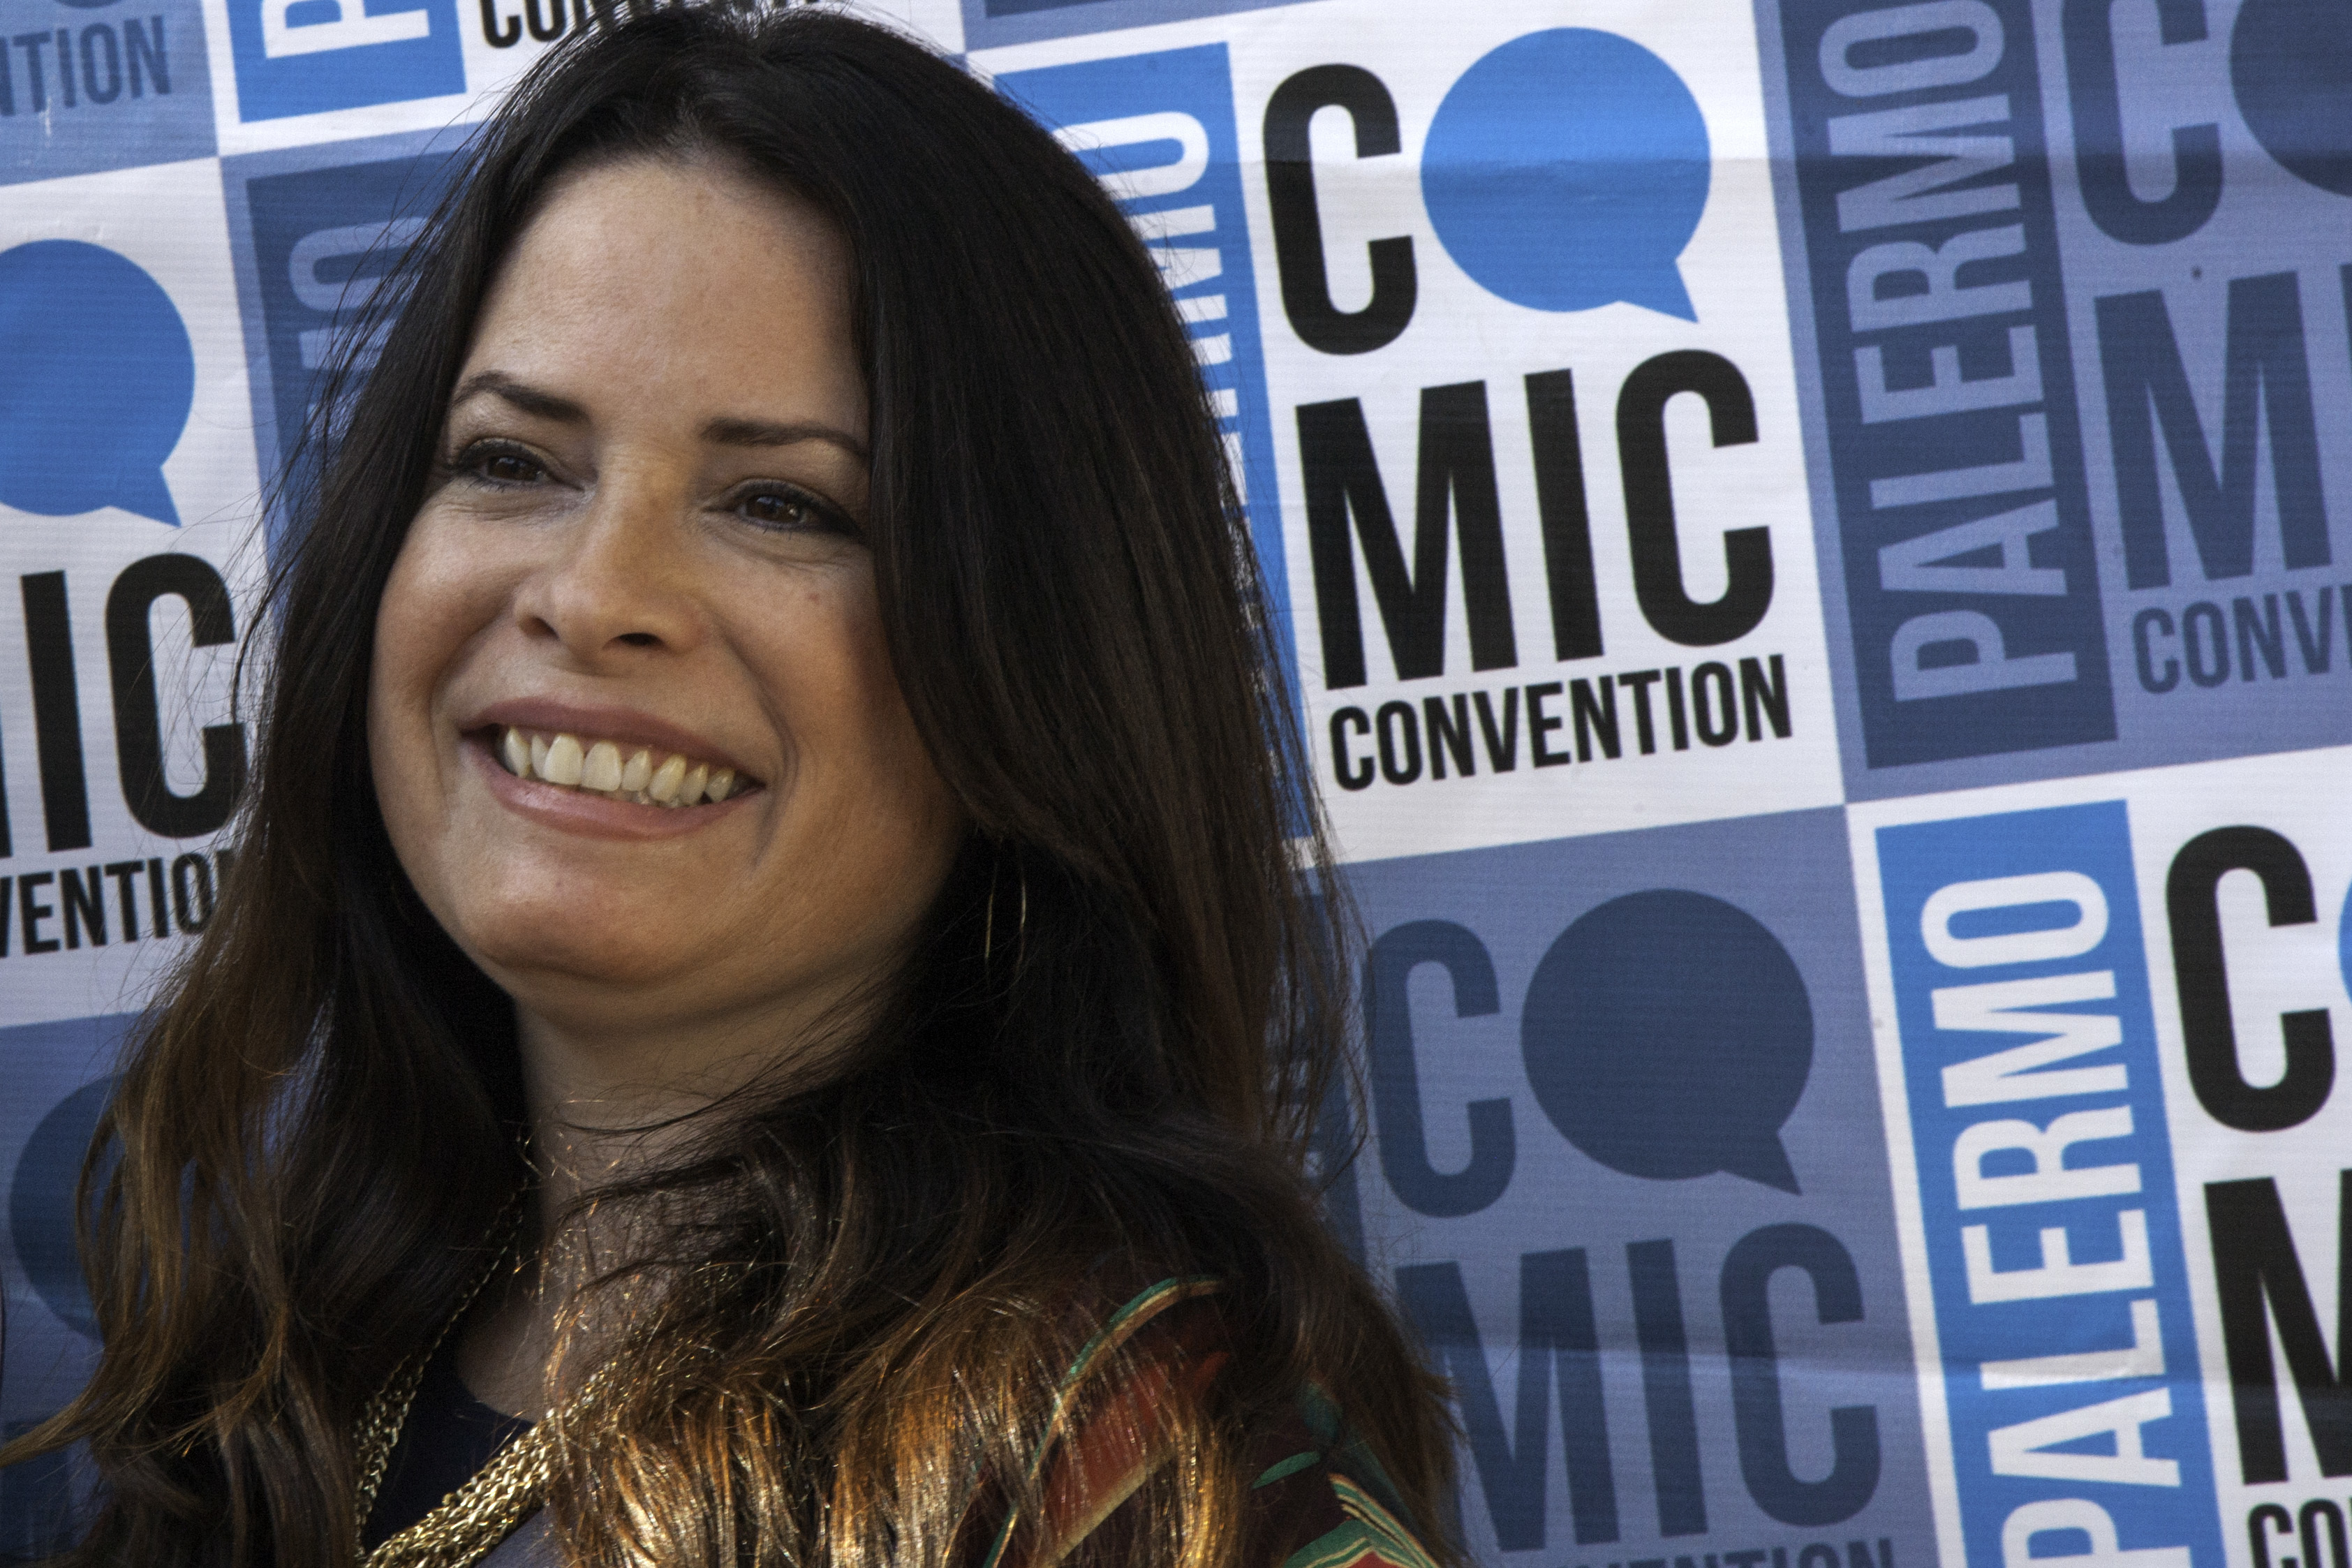 Holly Marie Combs wasn't impressed with the reboot announcement. Credit: PA Images